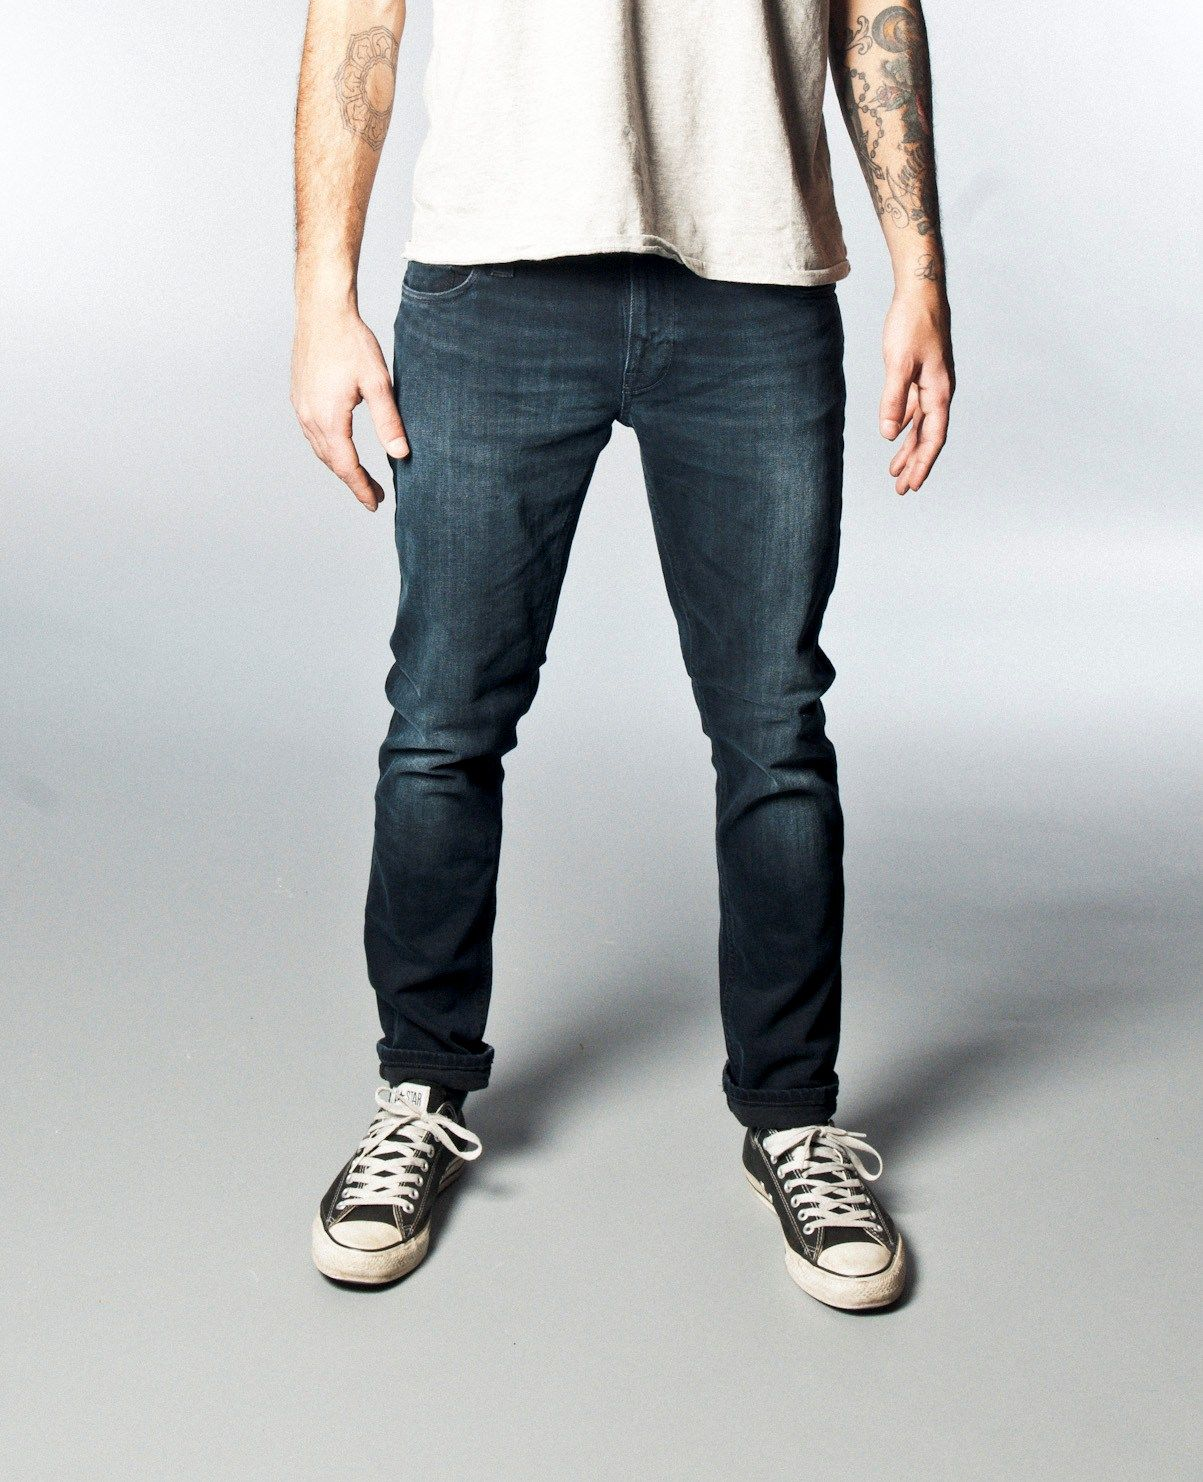 Tight Long John Org. Black And Grey - Nudie Jeans Company  204877413a62